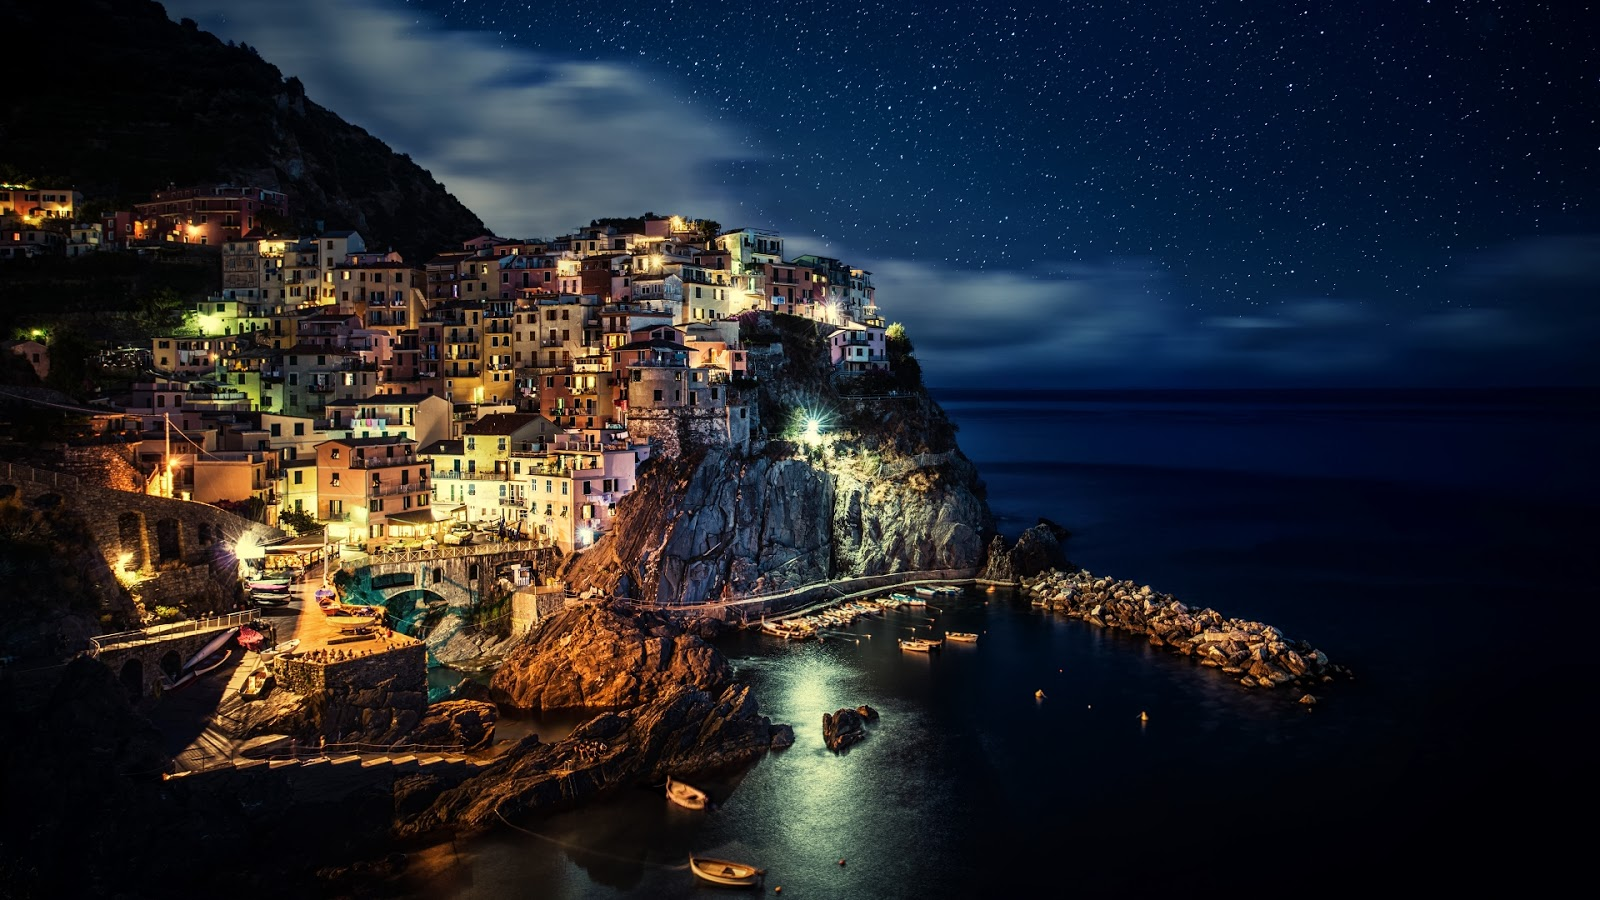 night manarola places earth place sky nature cities wallpapers italy stunning nighttime